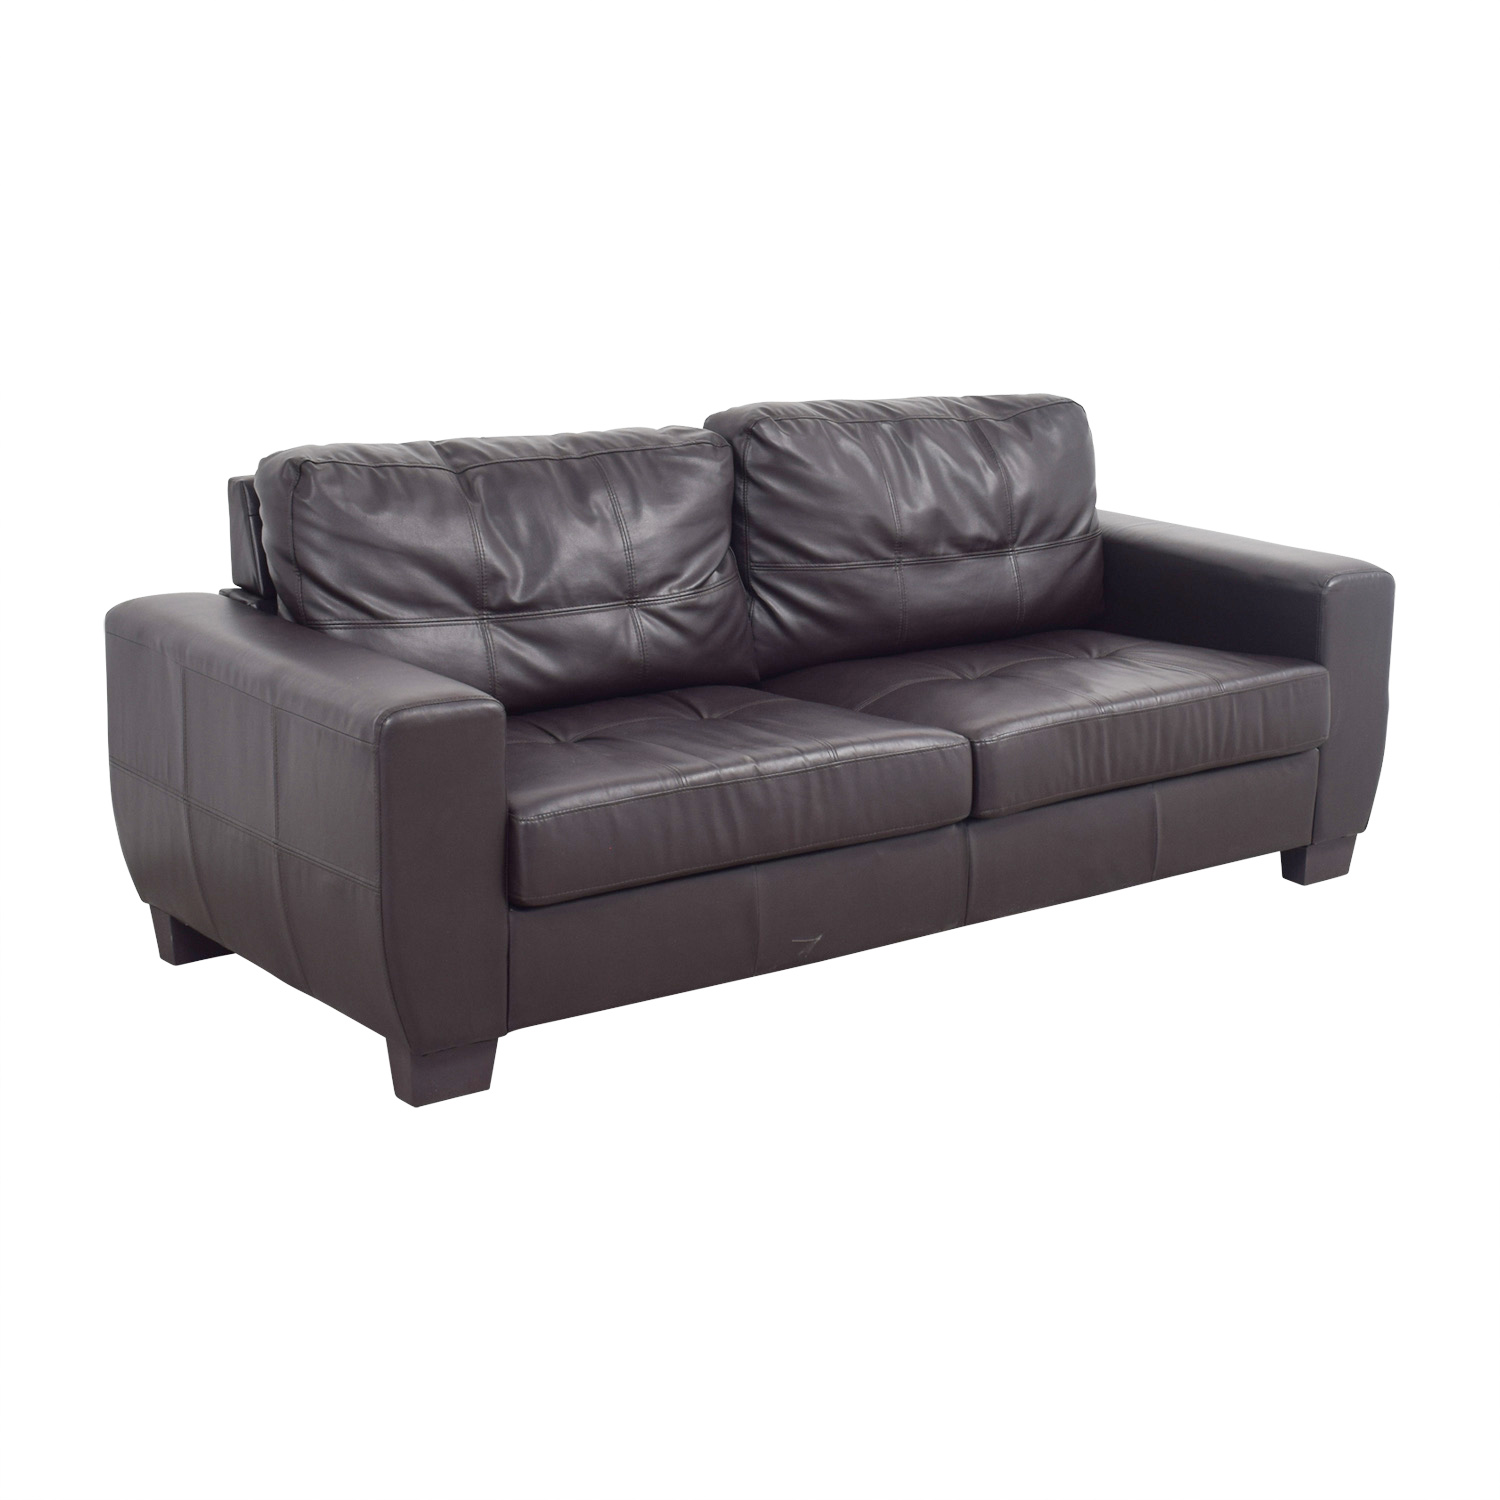 Brown Bonded Leather Two-Cushion Sofa nj